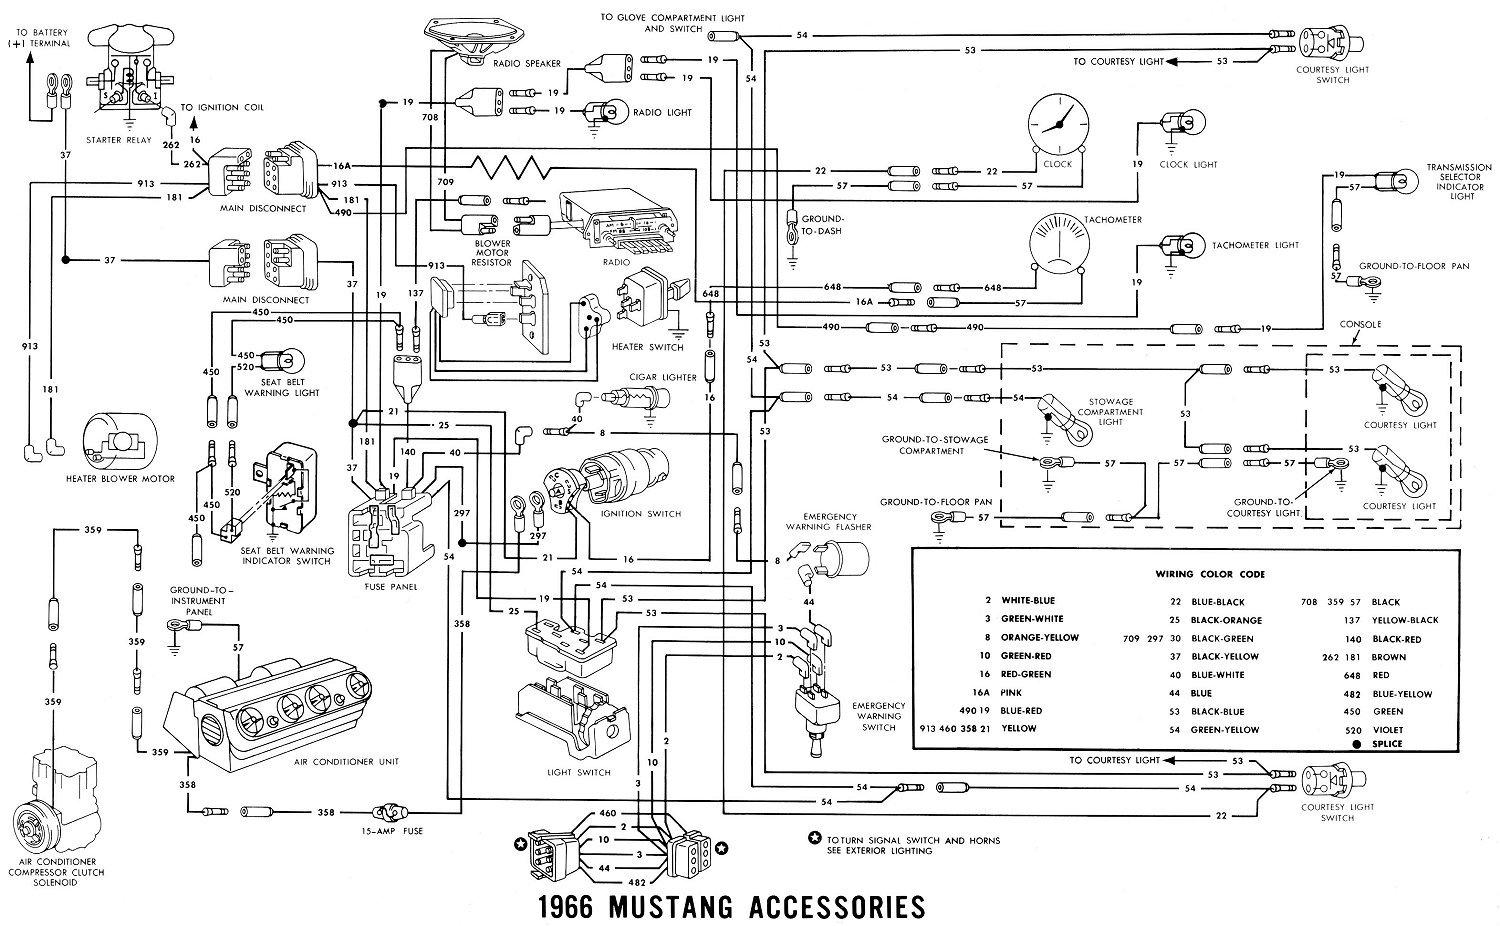 66acces1 vintage mustang wiring diagrams 1970 mustang wiring diagram at alyssarenee.co